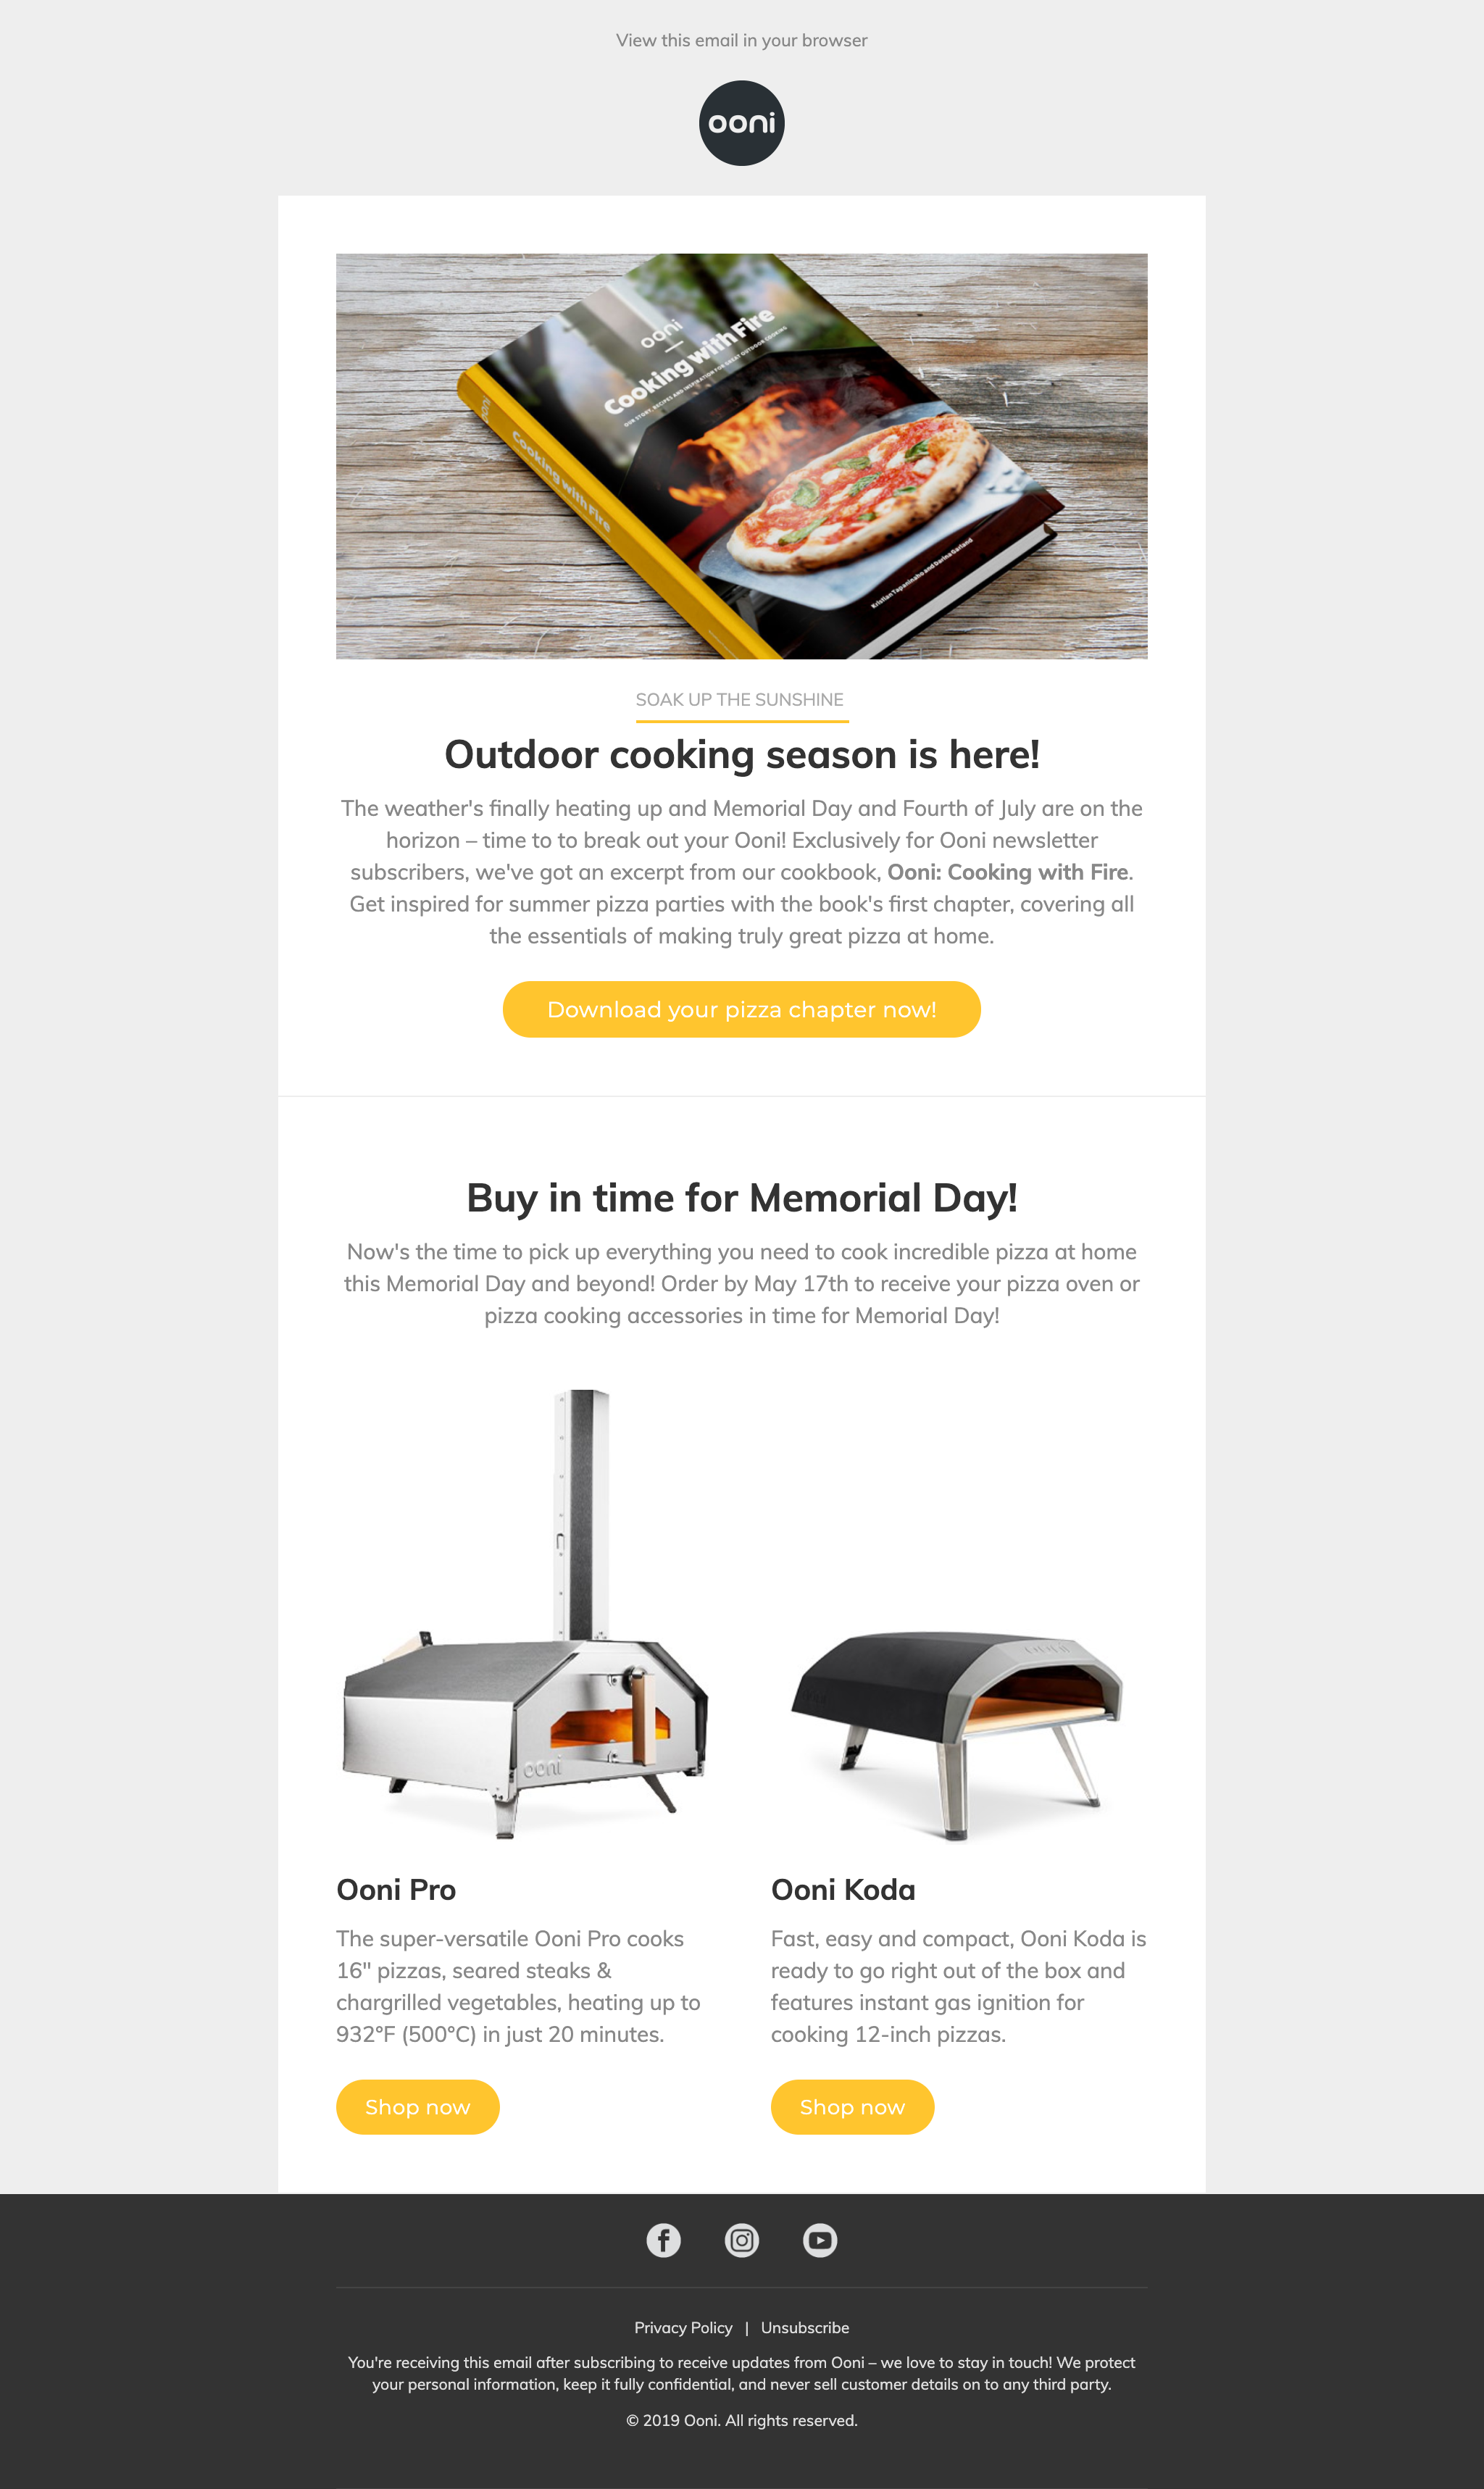 Ooni content and product email